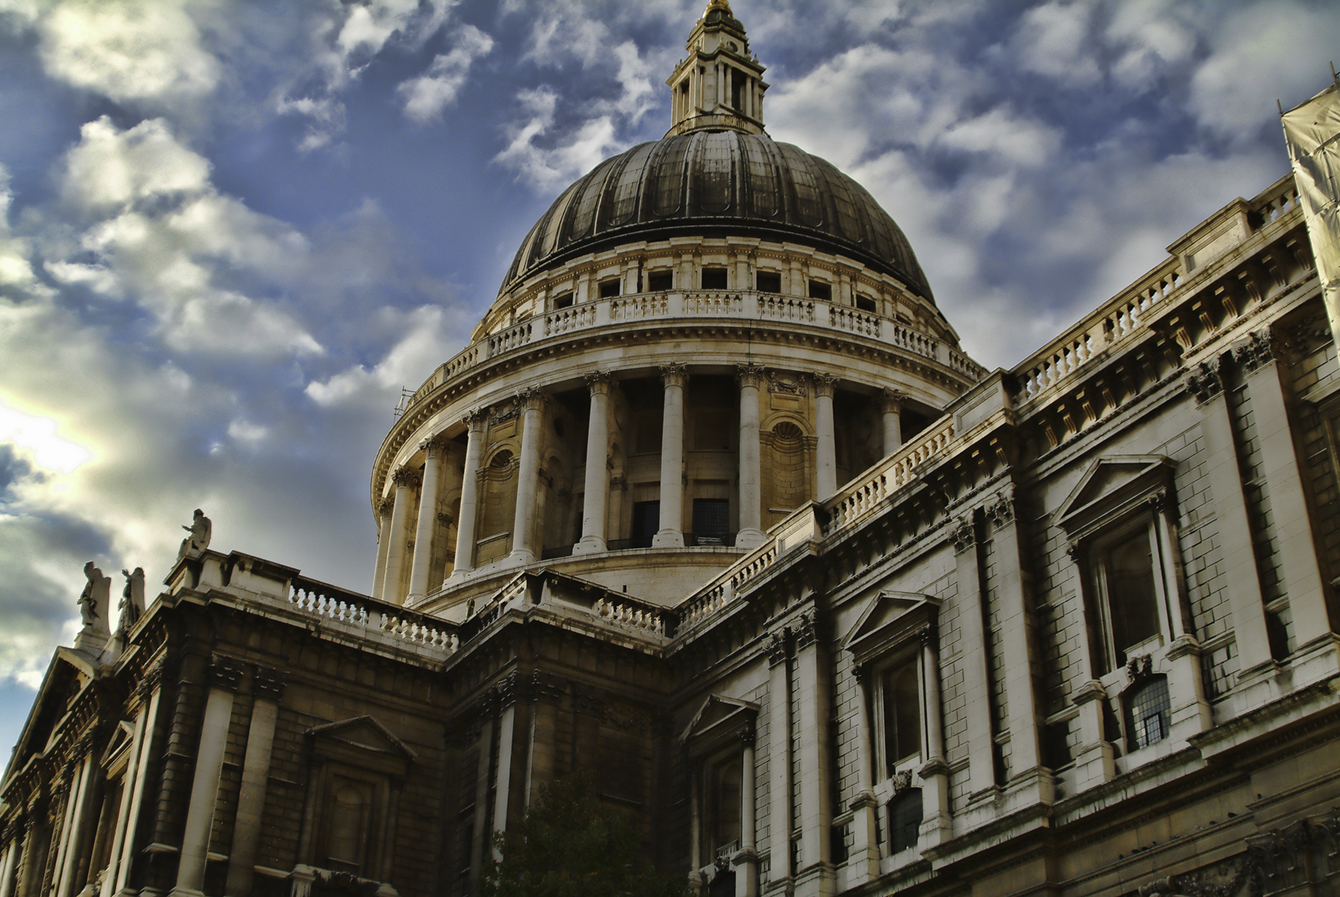 It's a bucket list item. St Paul's Cathedral. The whispering gallery is here.